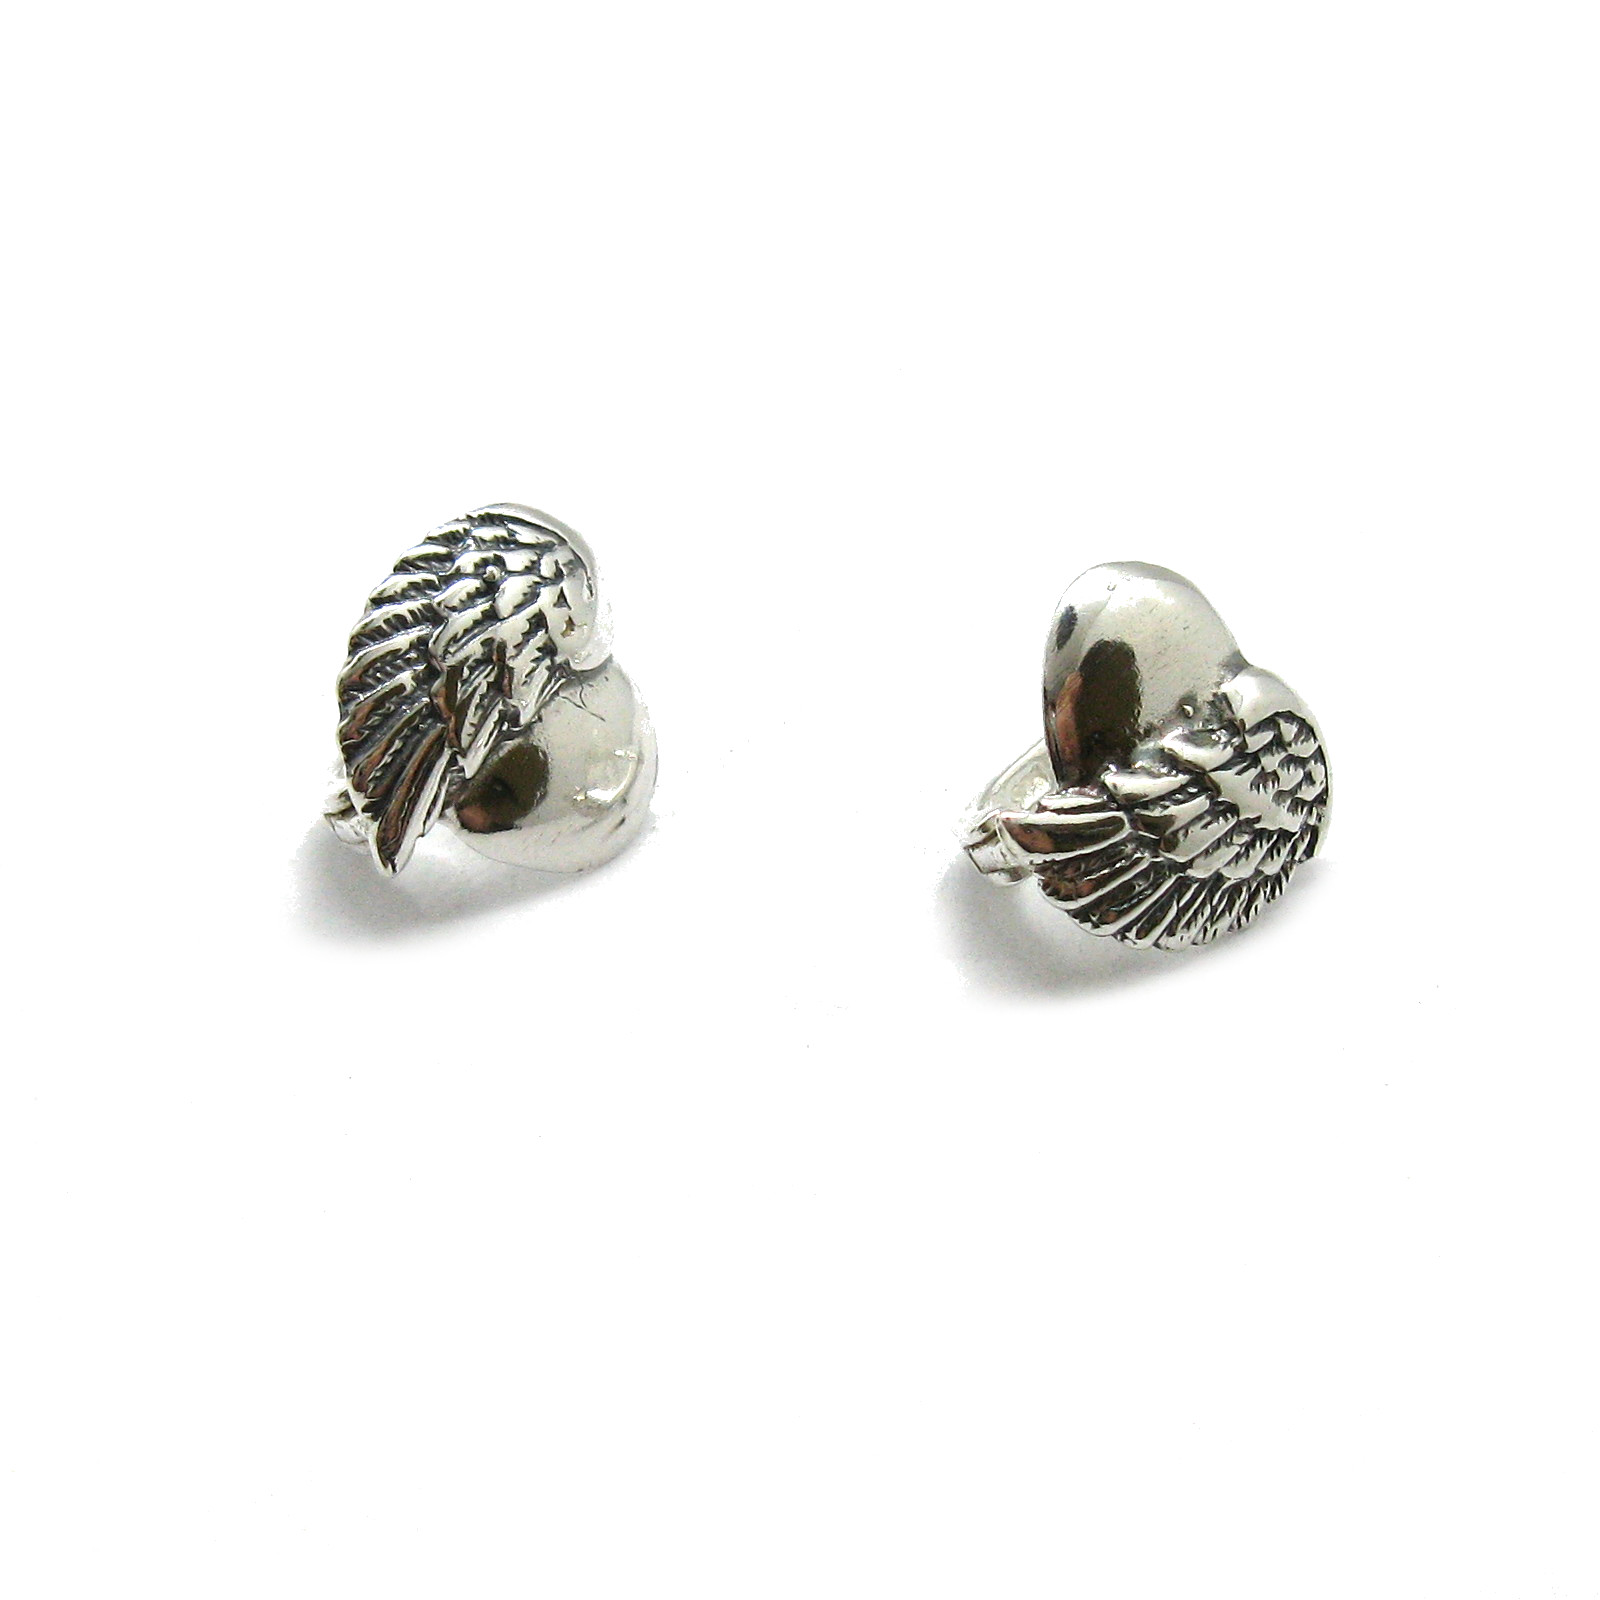 Silver earrings - E000764